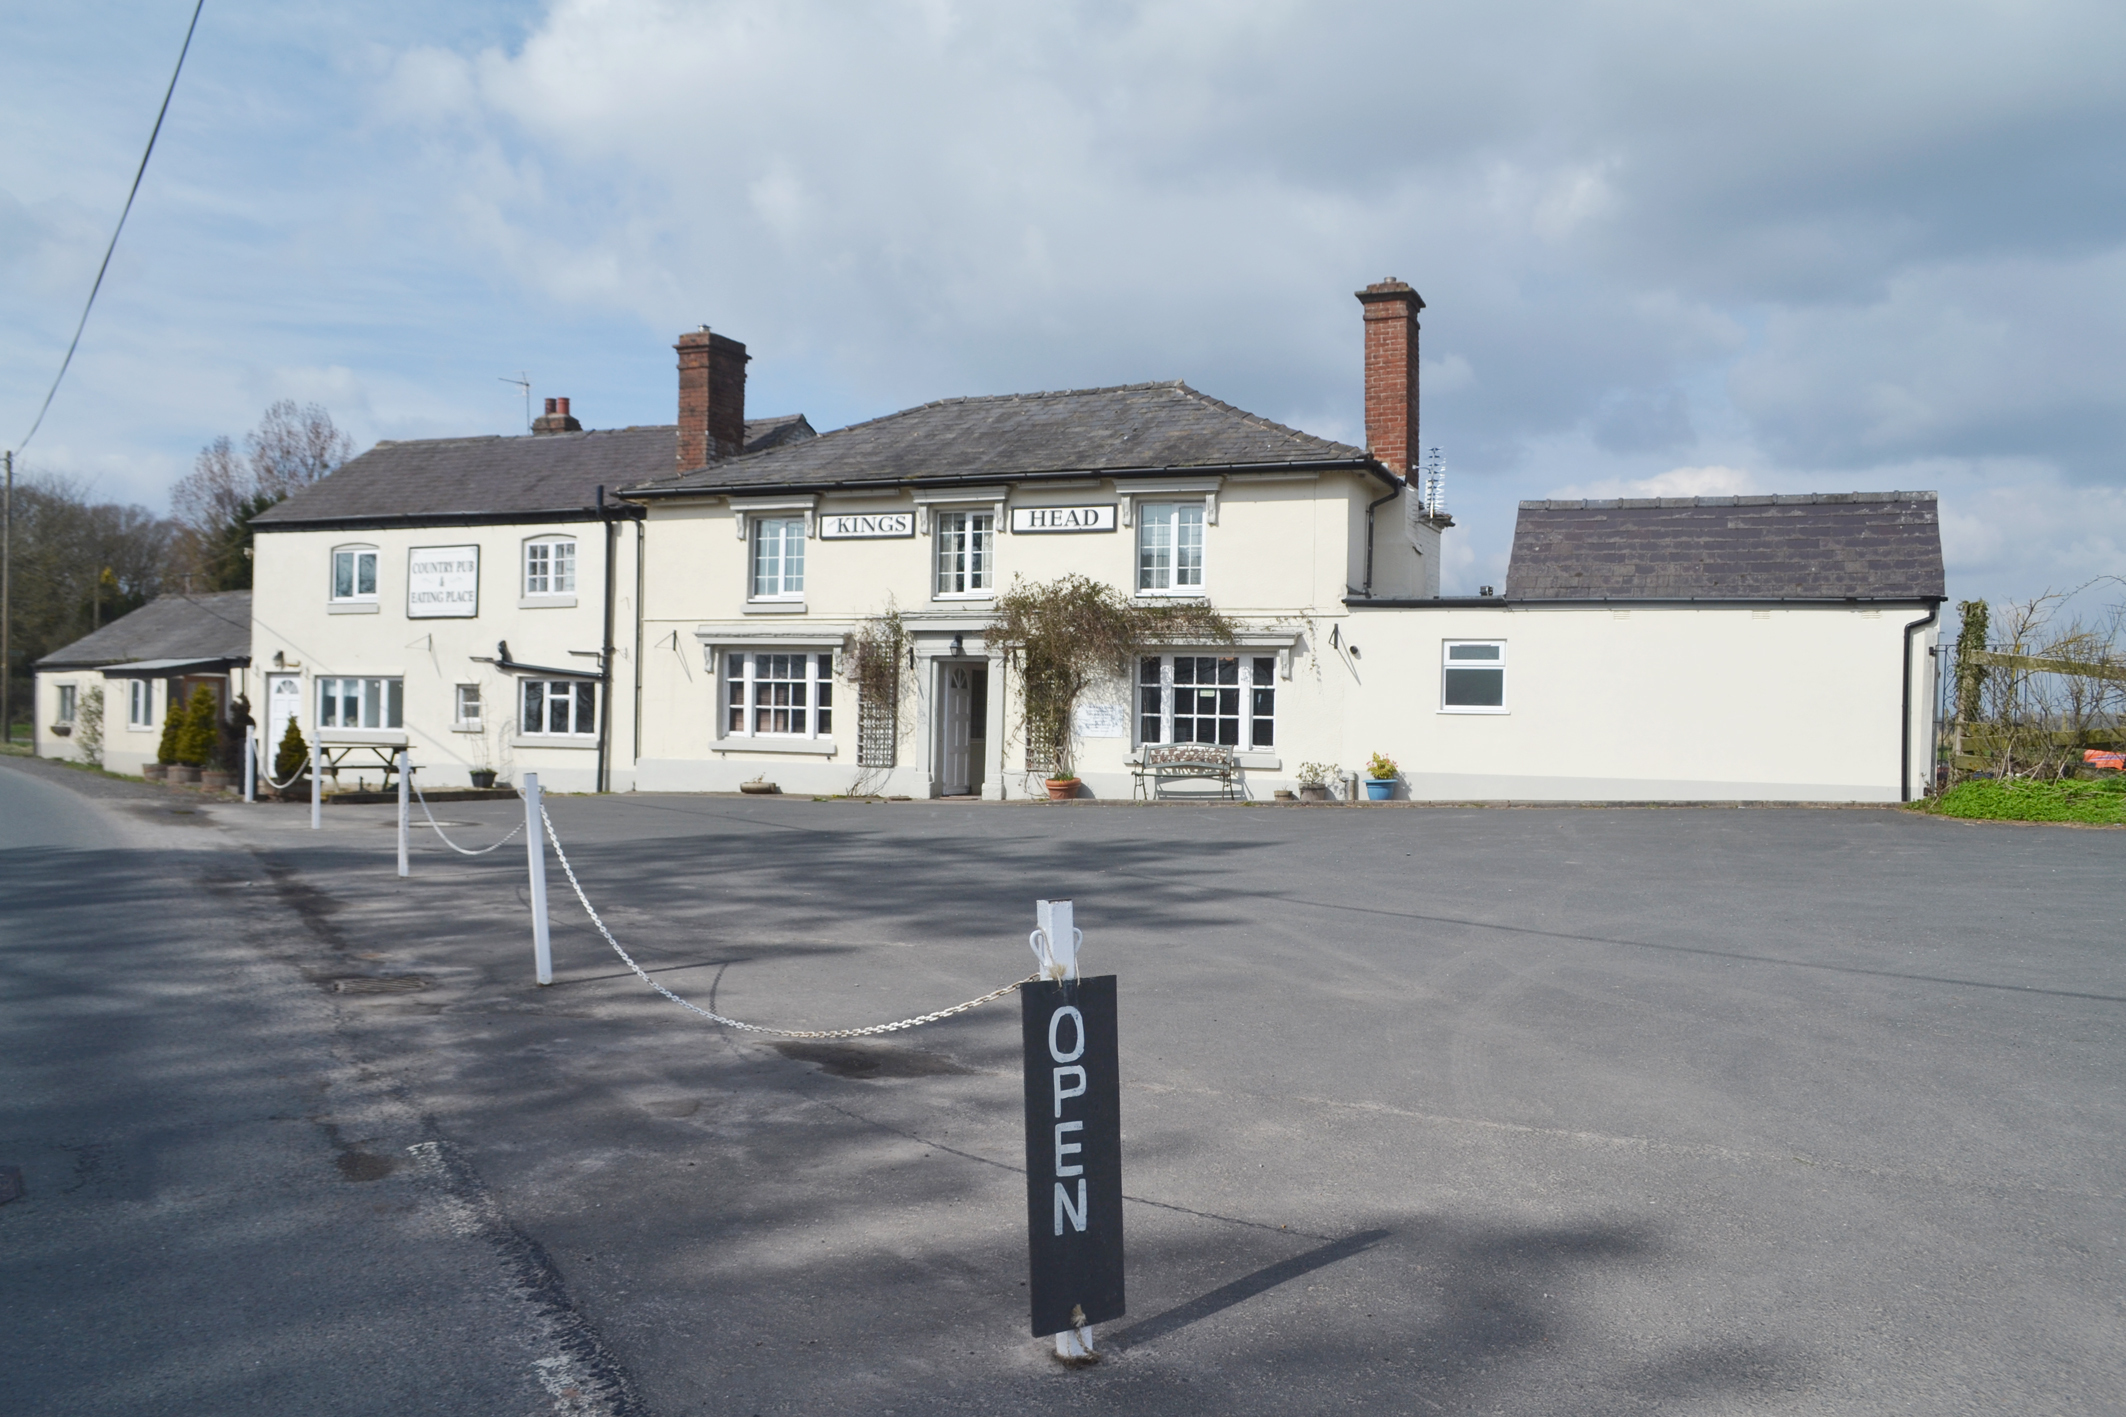 The King's Head at Docklow is up for sale.